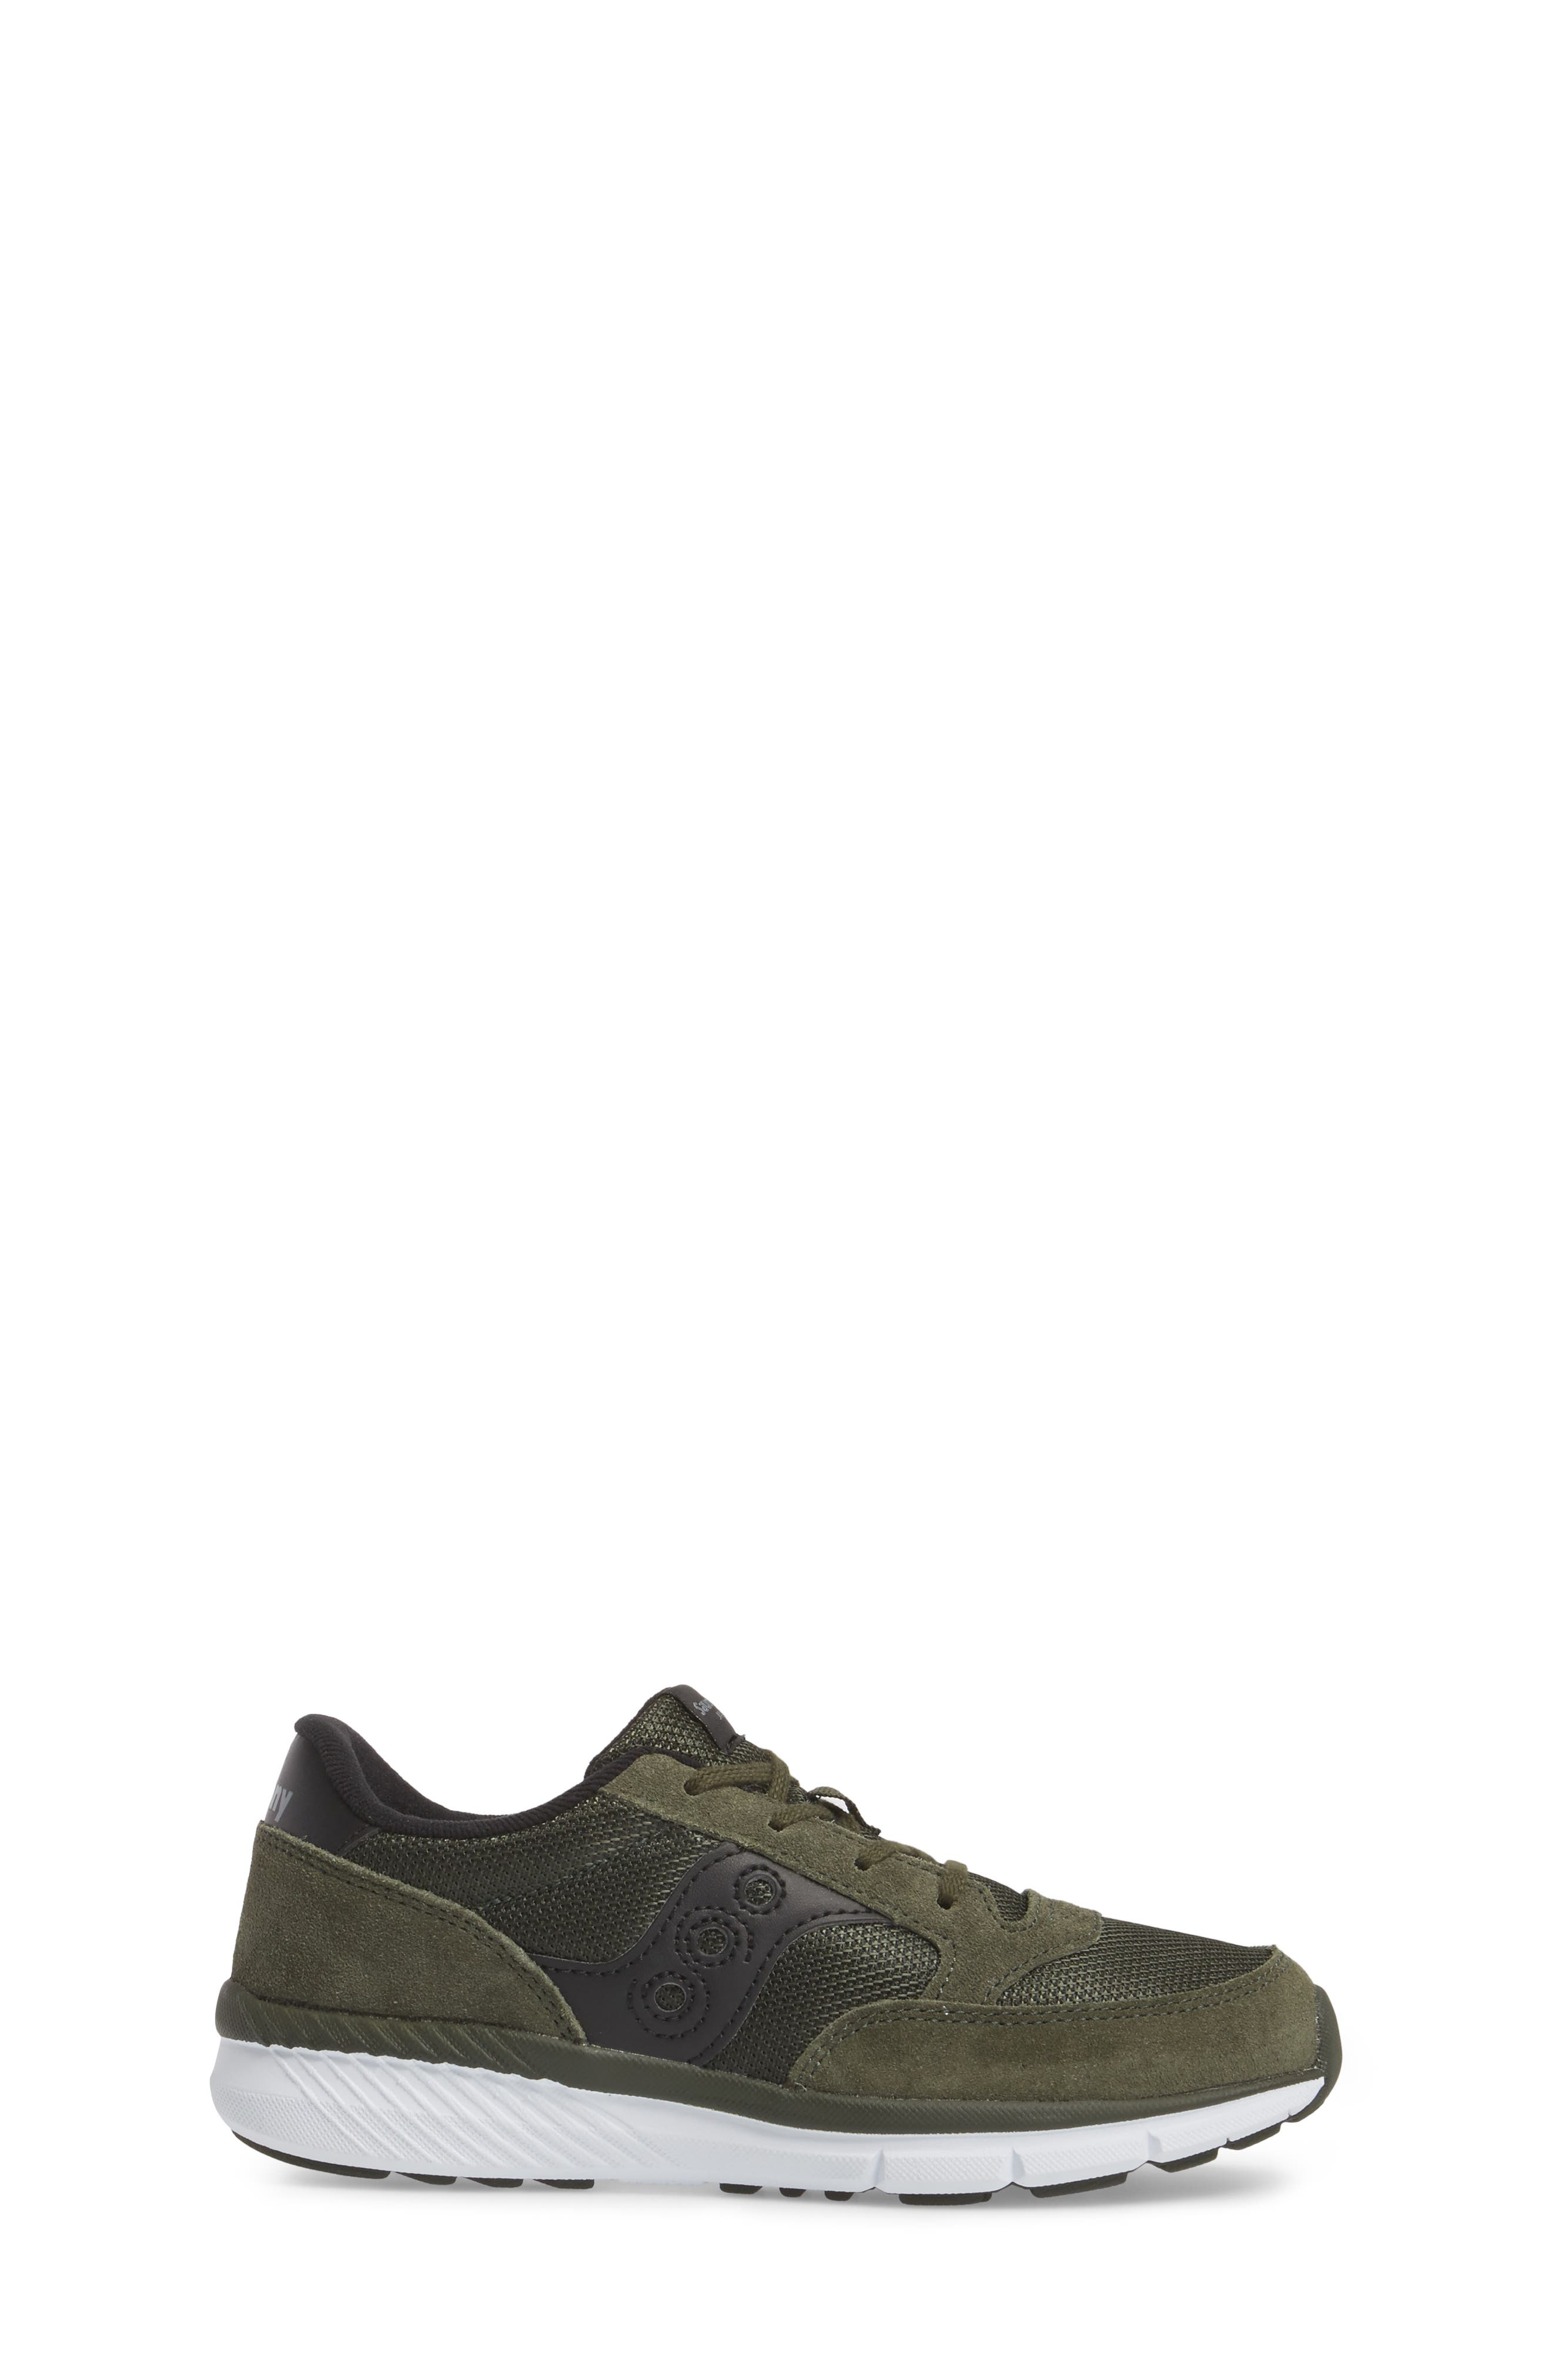 Jazz Lite Sneaker,                             Alternate thumbnail 3, color,                             Olive